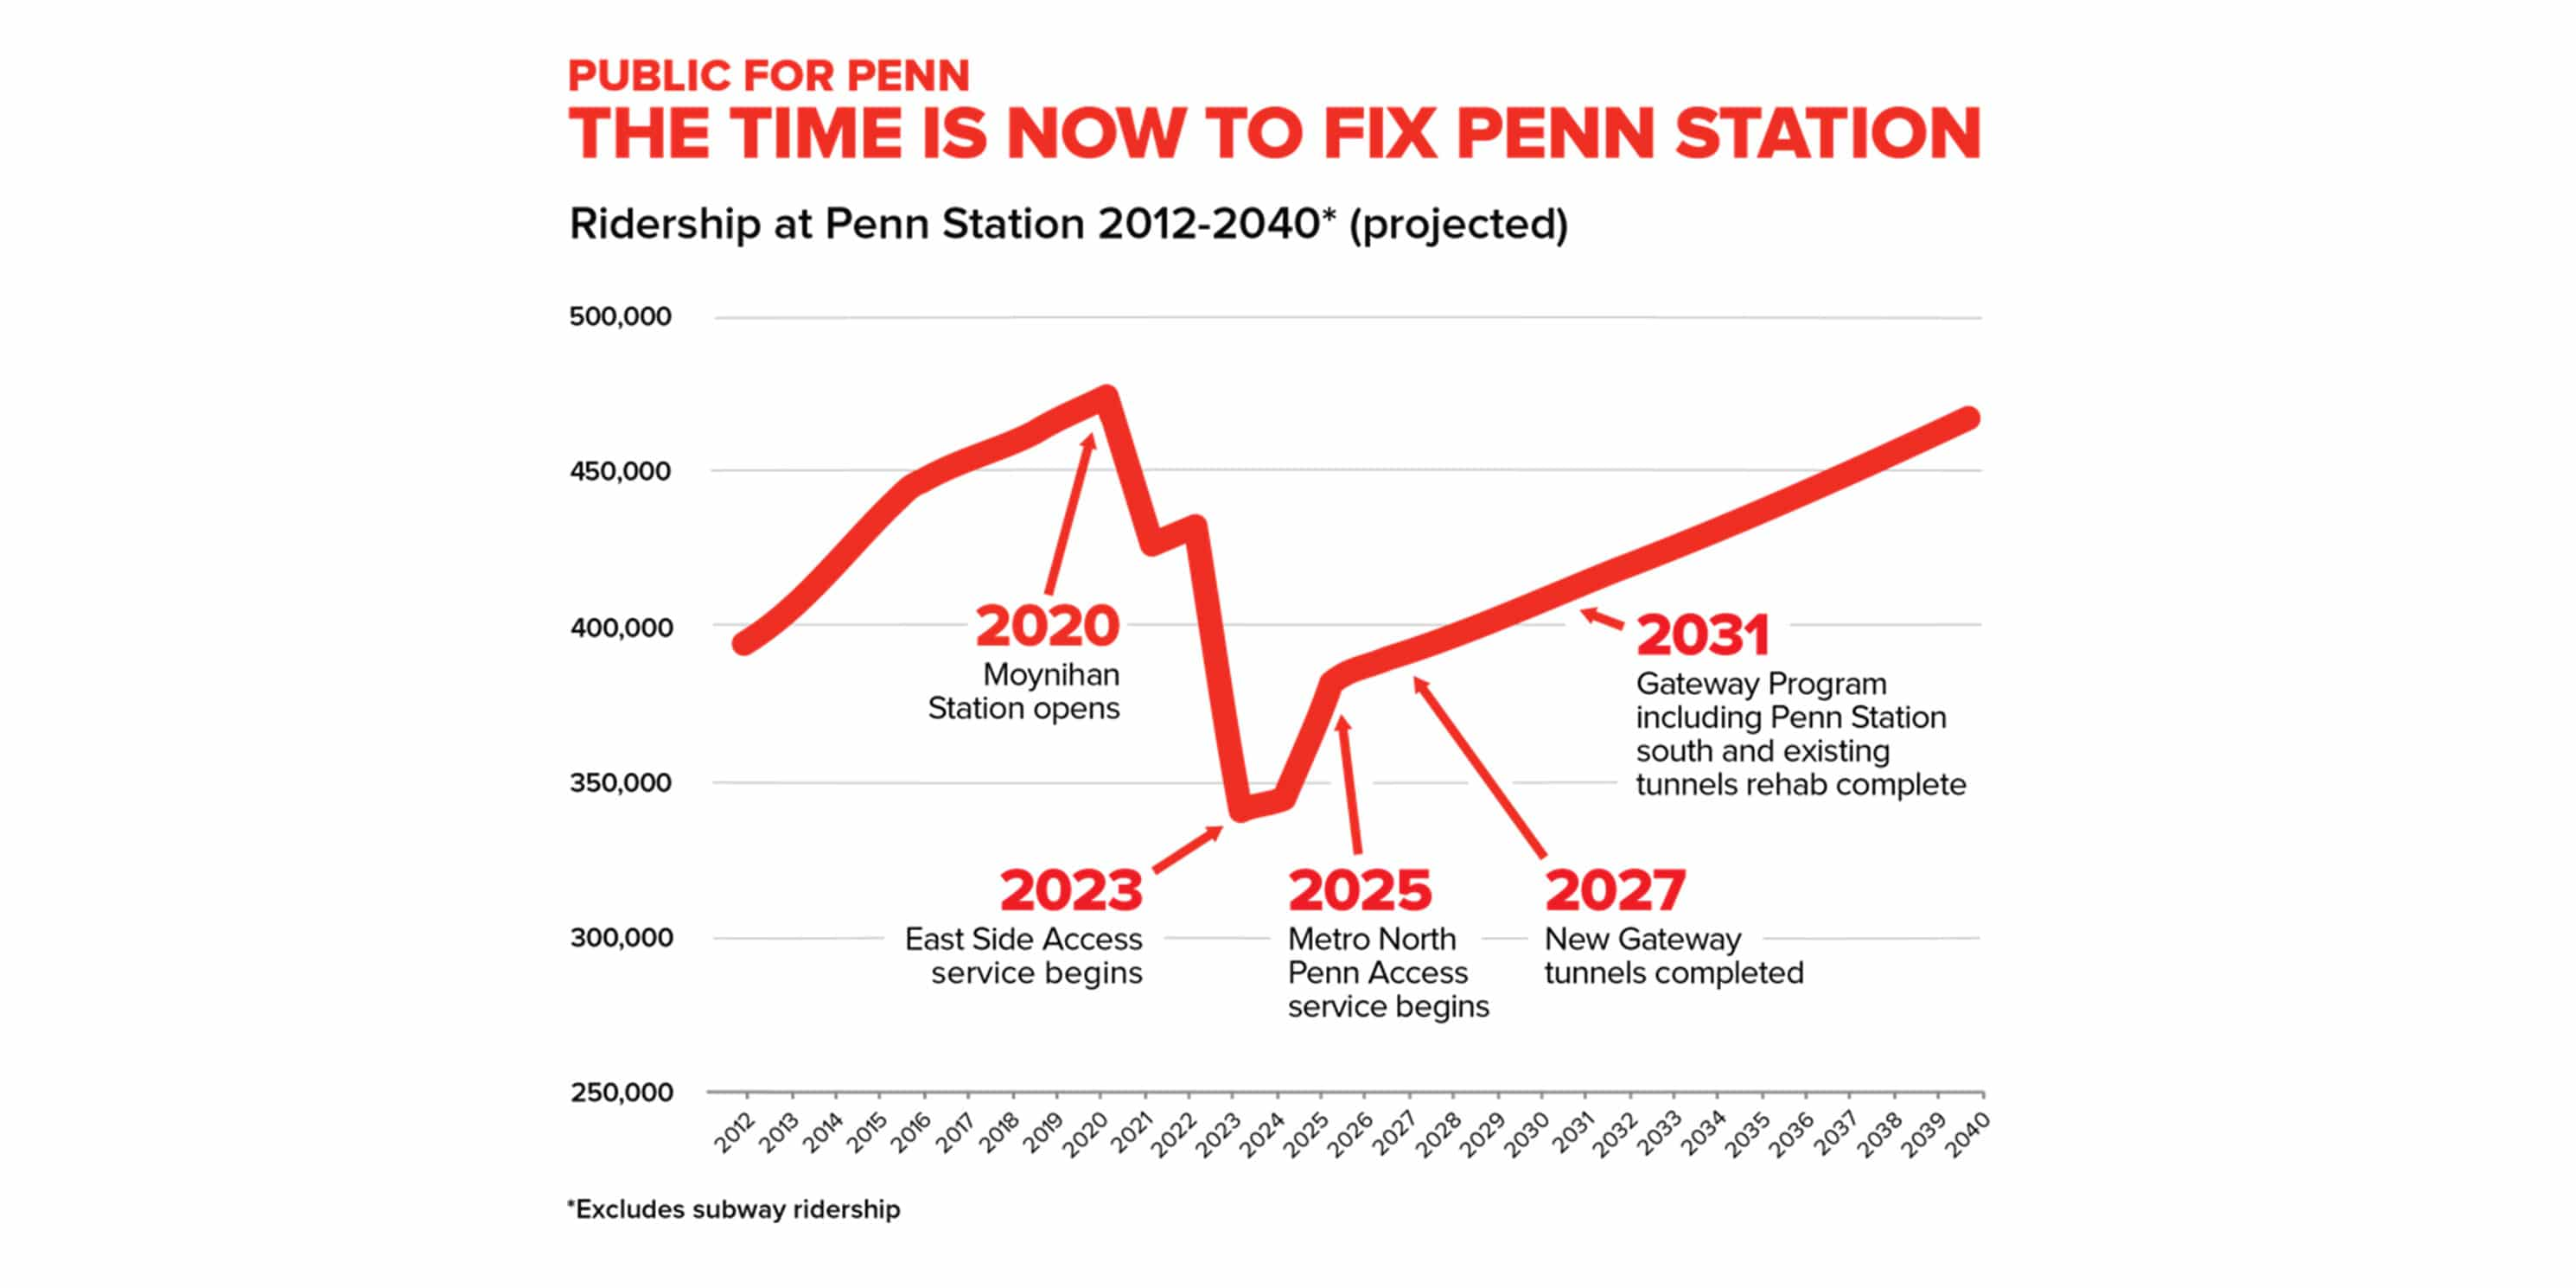 Ridership at Penn Station 2012-2040* (Projected)